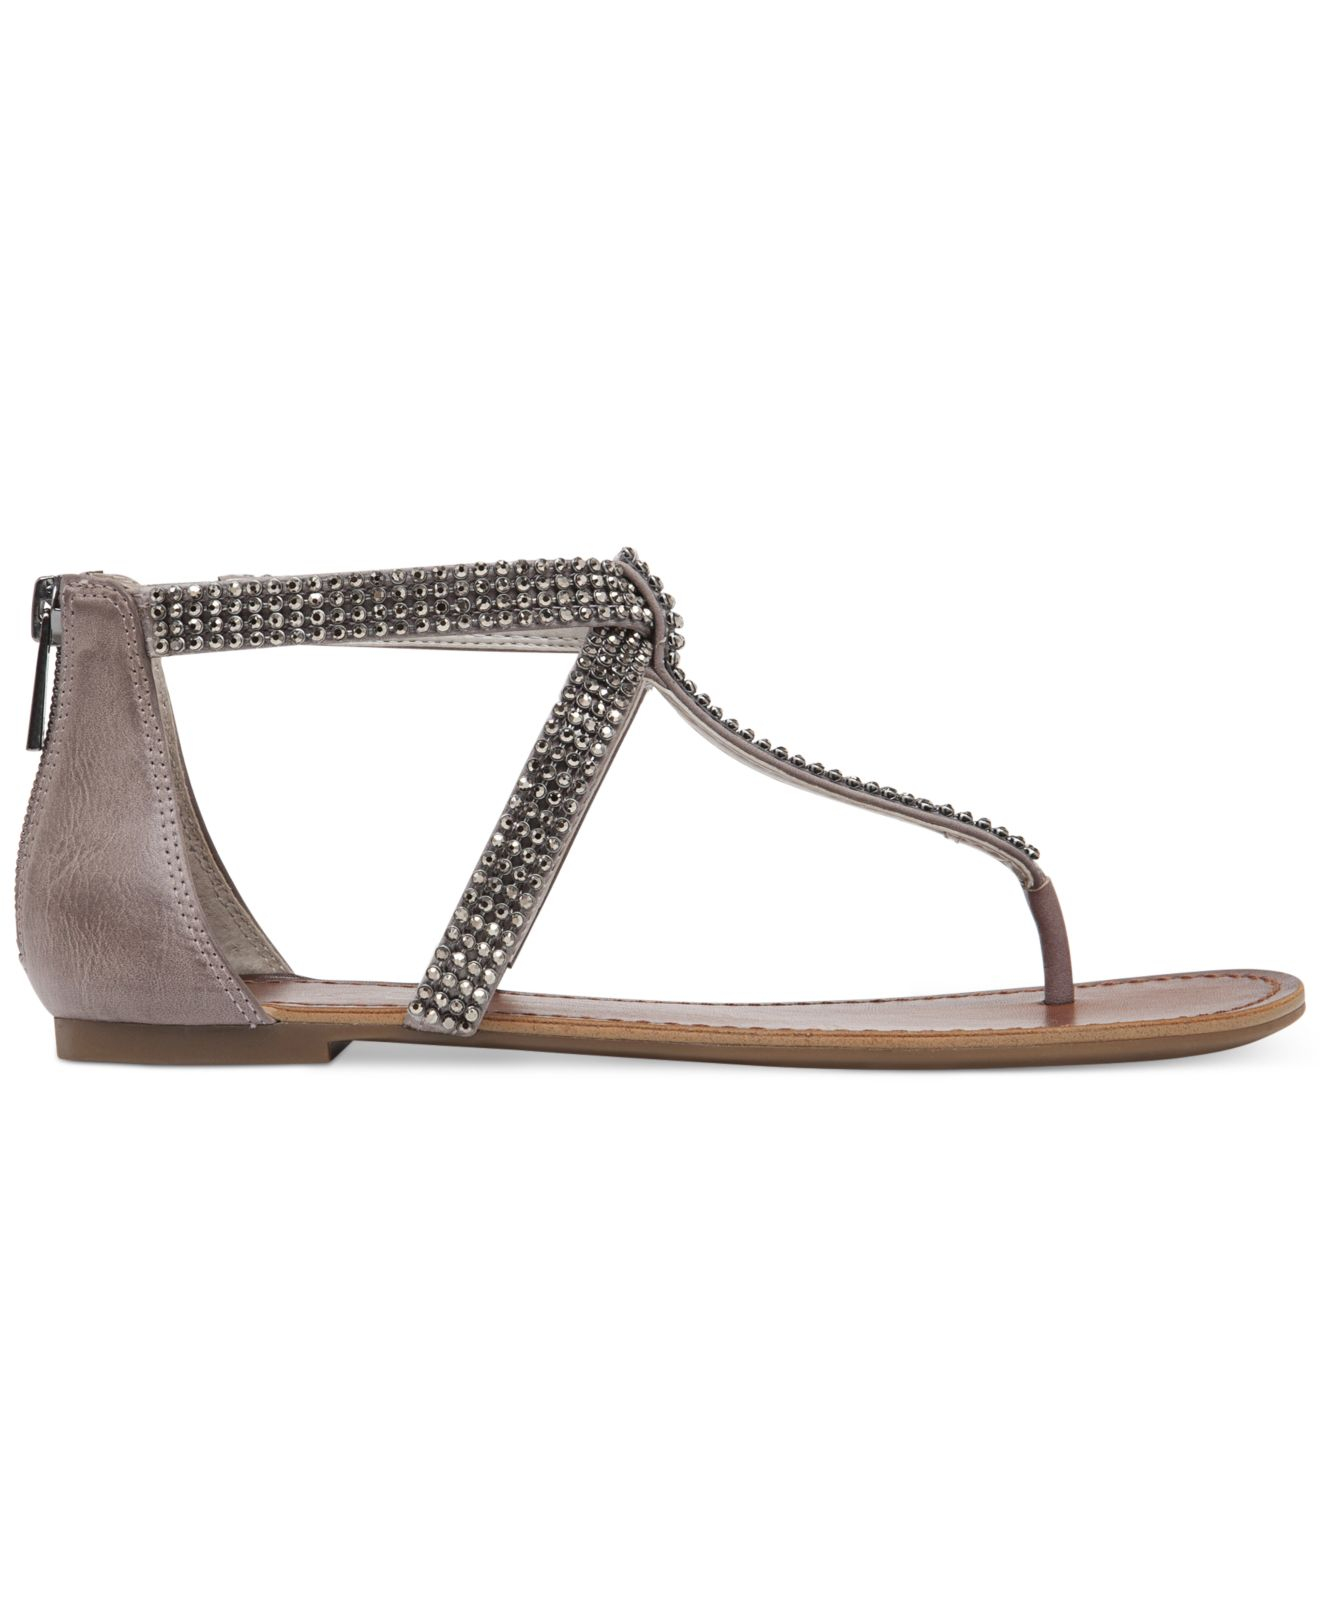 98486a96d39 Lyst - Jessica Simpson Garreth Flat Thong Sandals in Gray